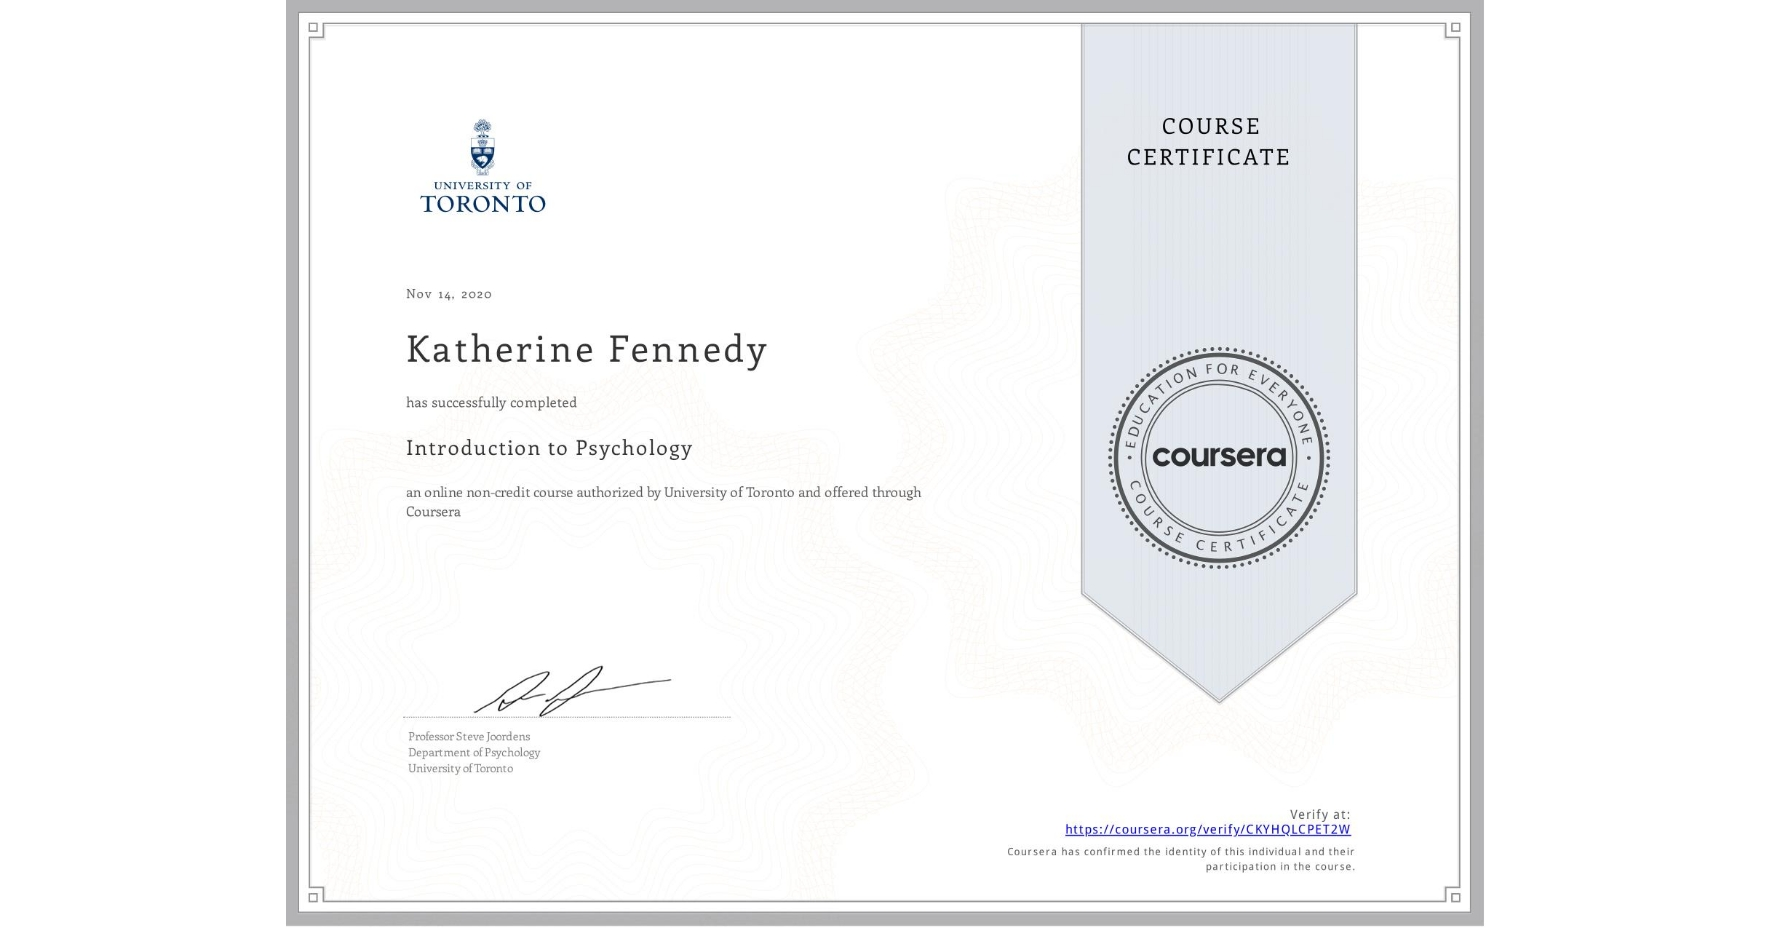 View certificate for Katherine Fennedy, Introduction to Psychology, an online non-credit course authorized by University of Toronto and offered through Coursera